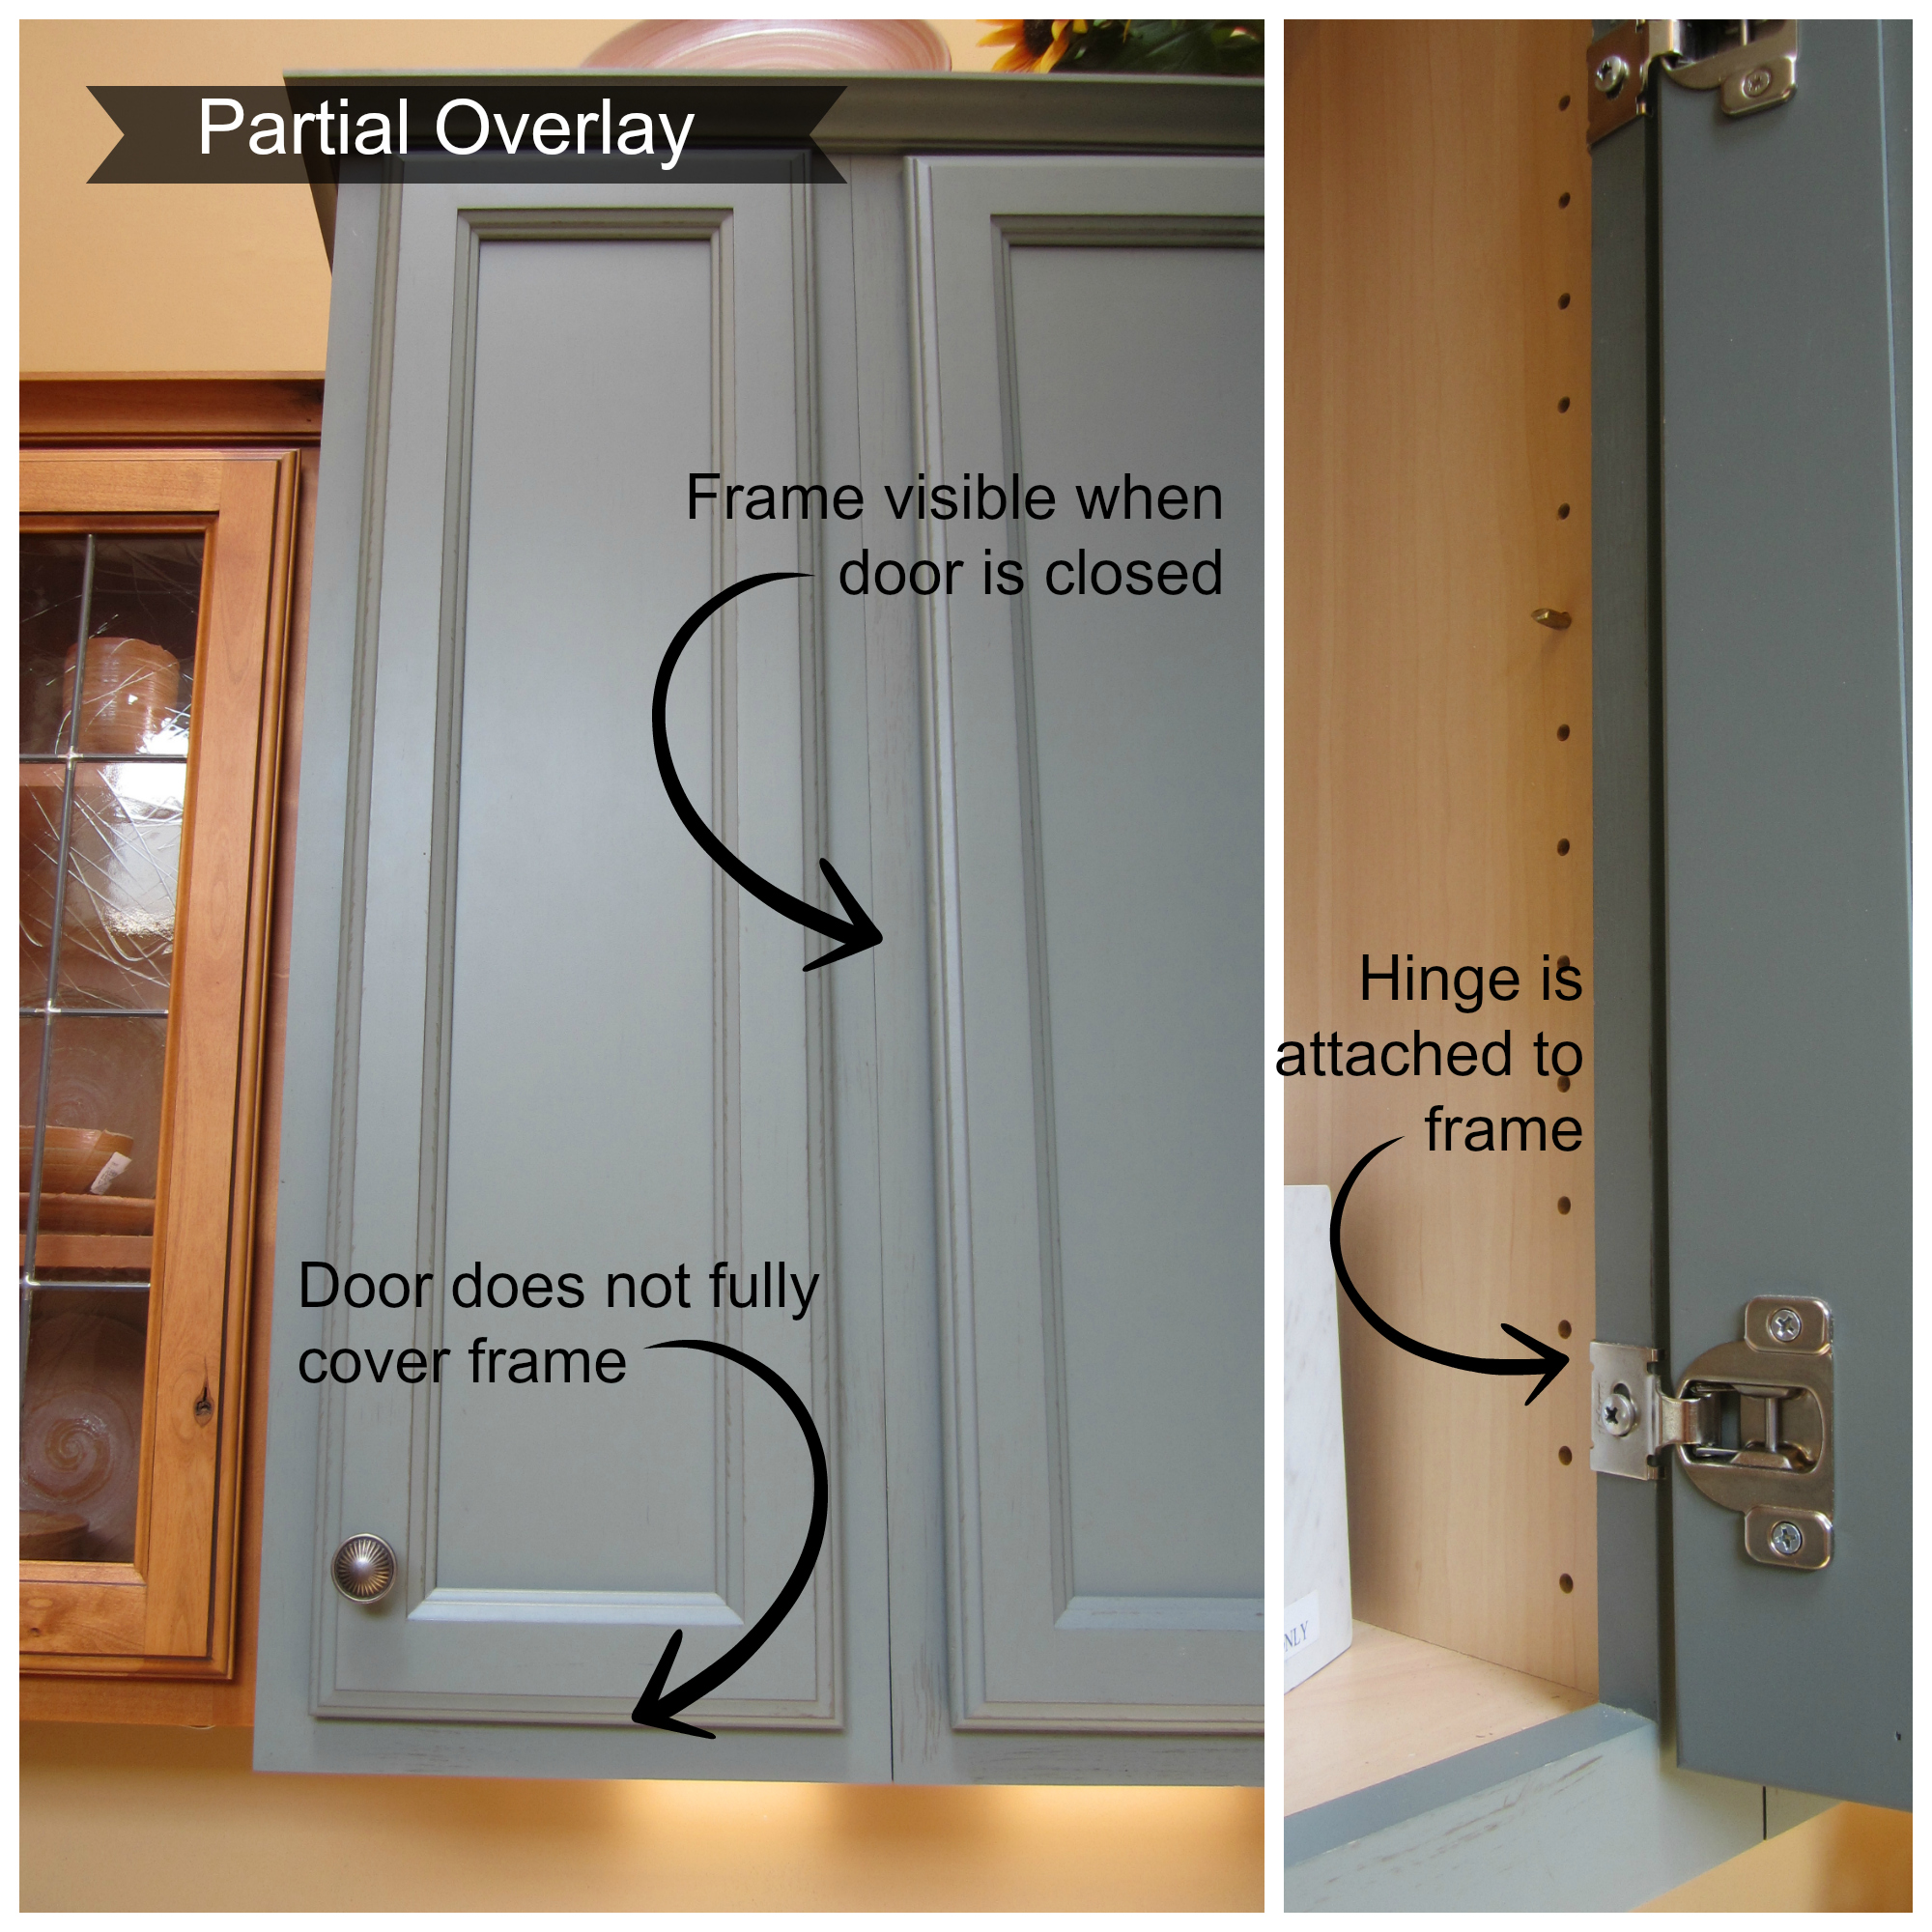 Deeper Usually ½ 1 To Account For The Loss Of E From Door There Is But Not Always A Premium Charge Inset Cabinetry Partial Overlay